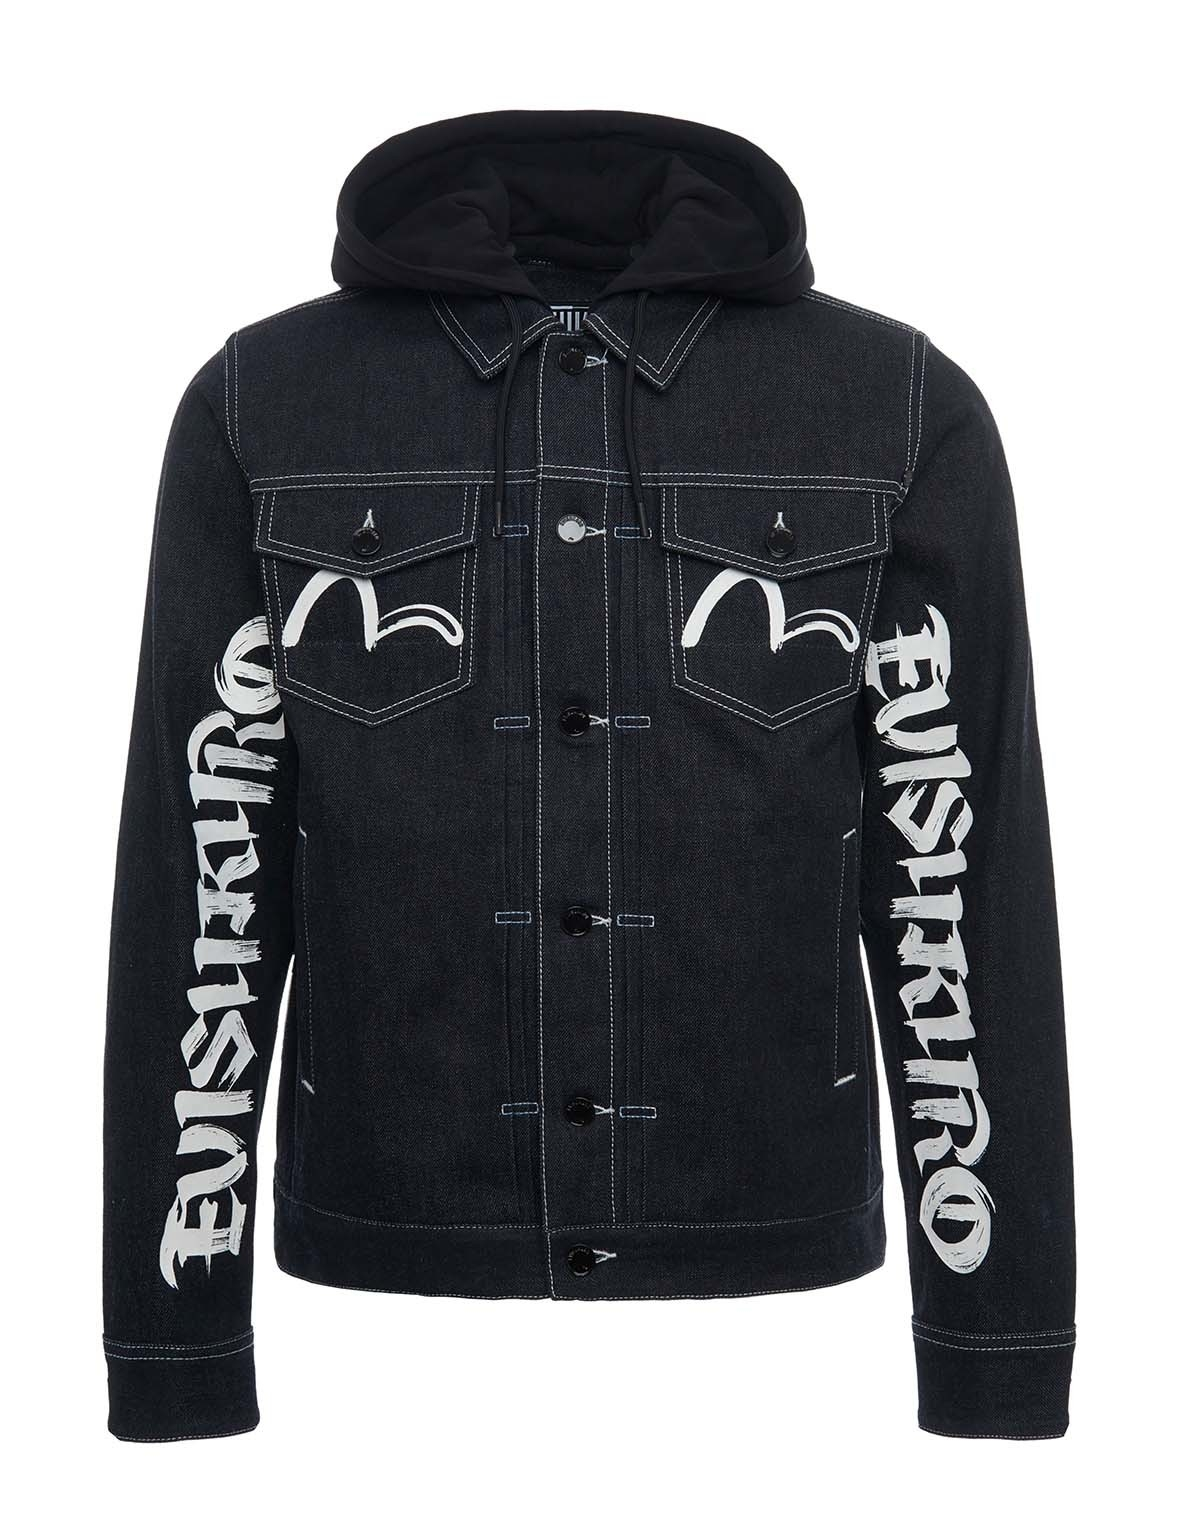 EVISU Brushstroke Logo Print Denim Jacket With Detachable Hood